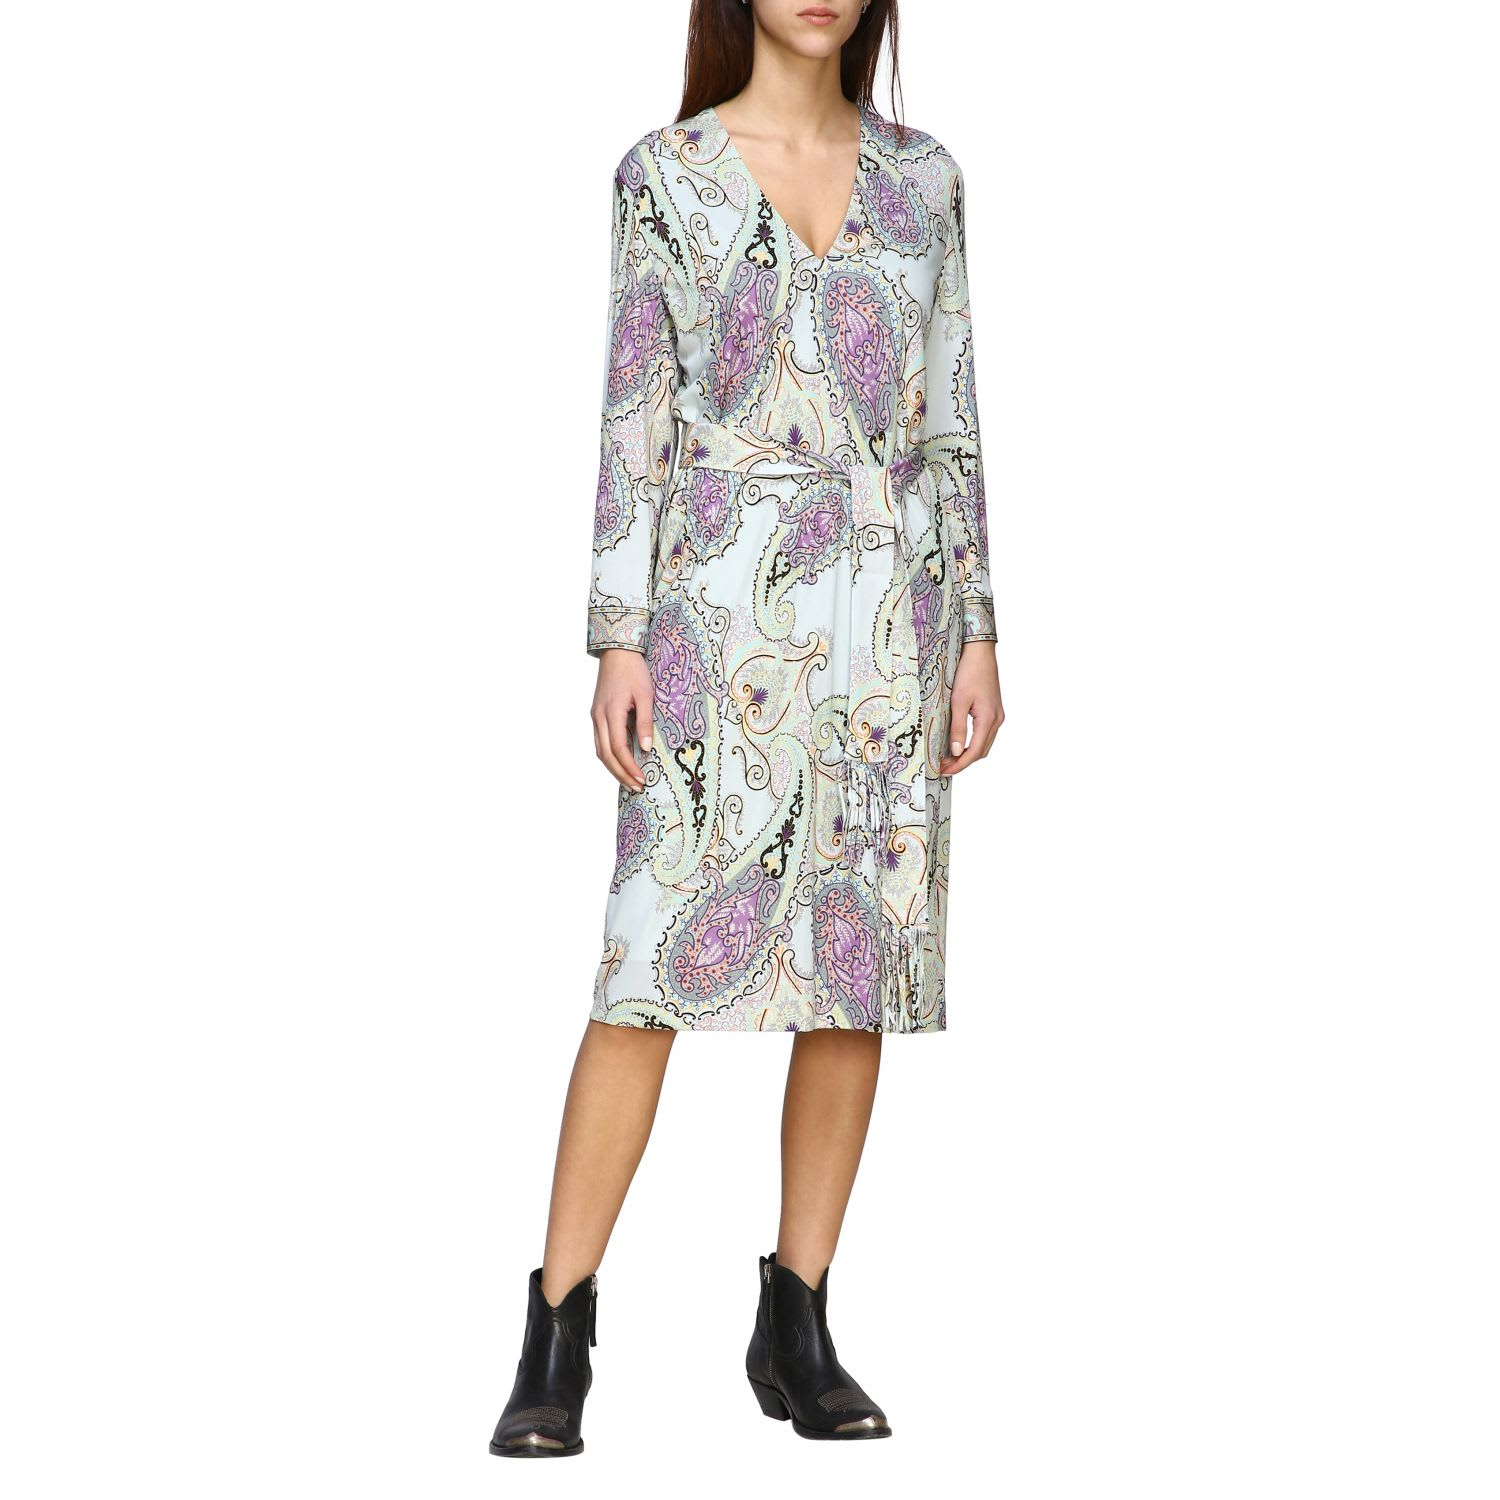 Buy Etro Dress Etro Jersey Dress With Paisley Print online, shop Etro with free shipping